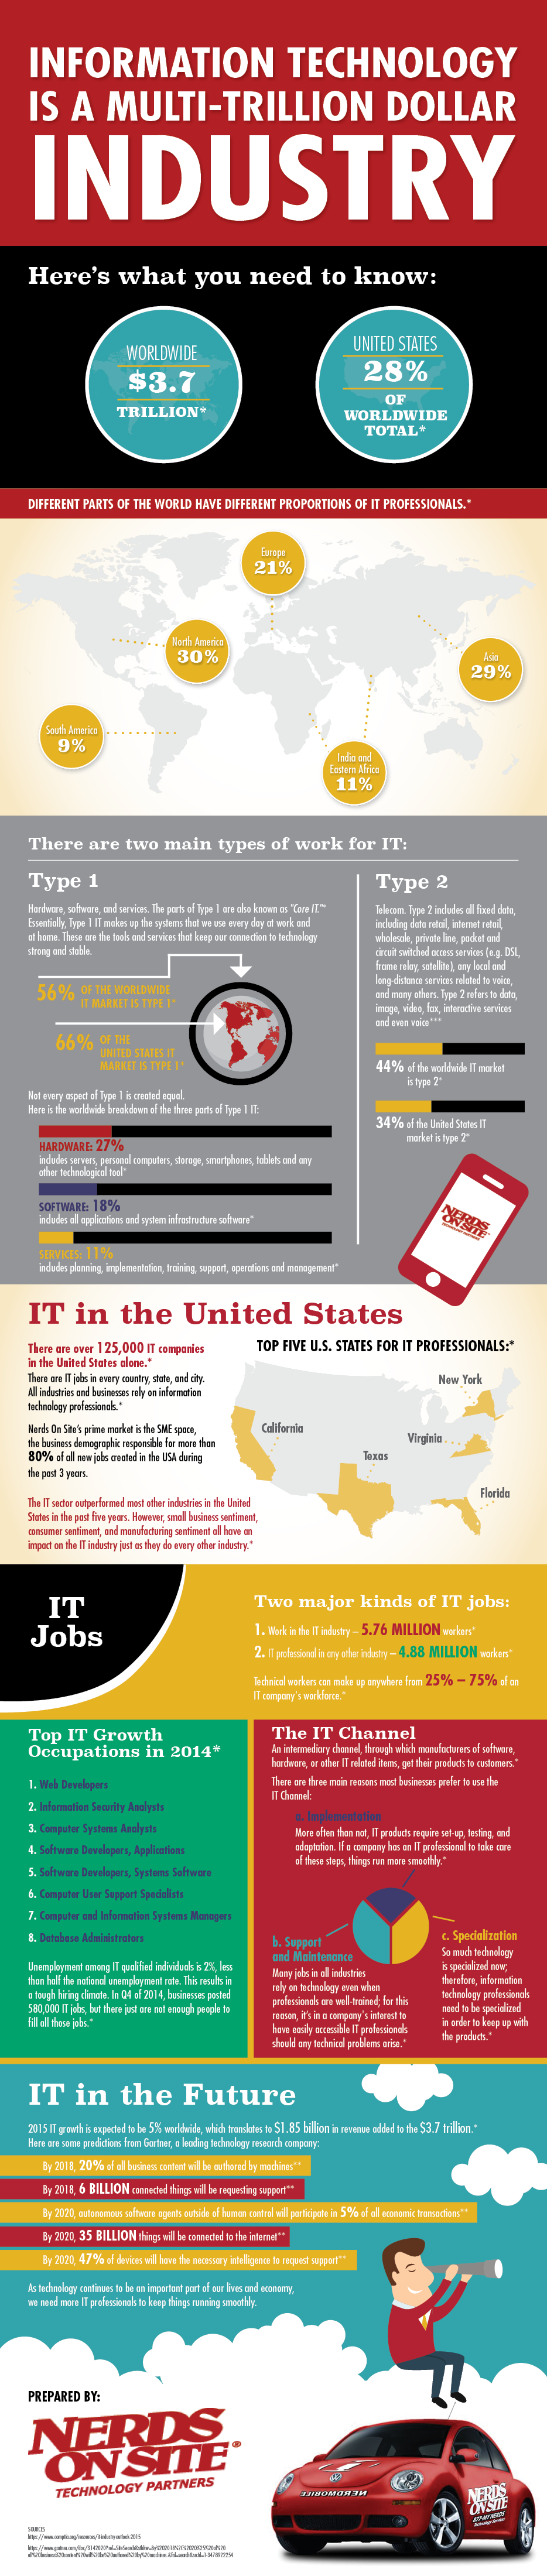 IT Industry in the US Infographic